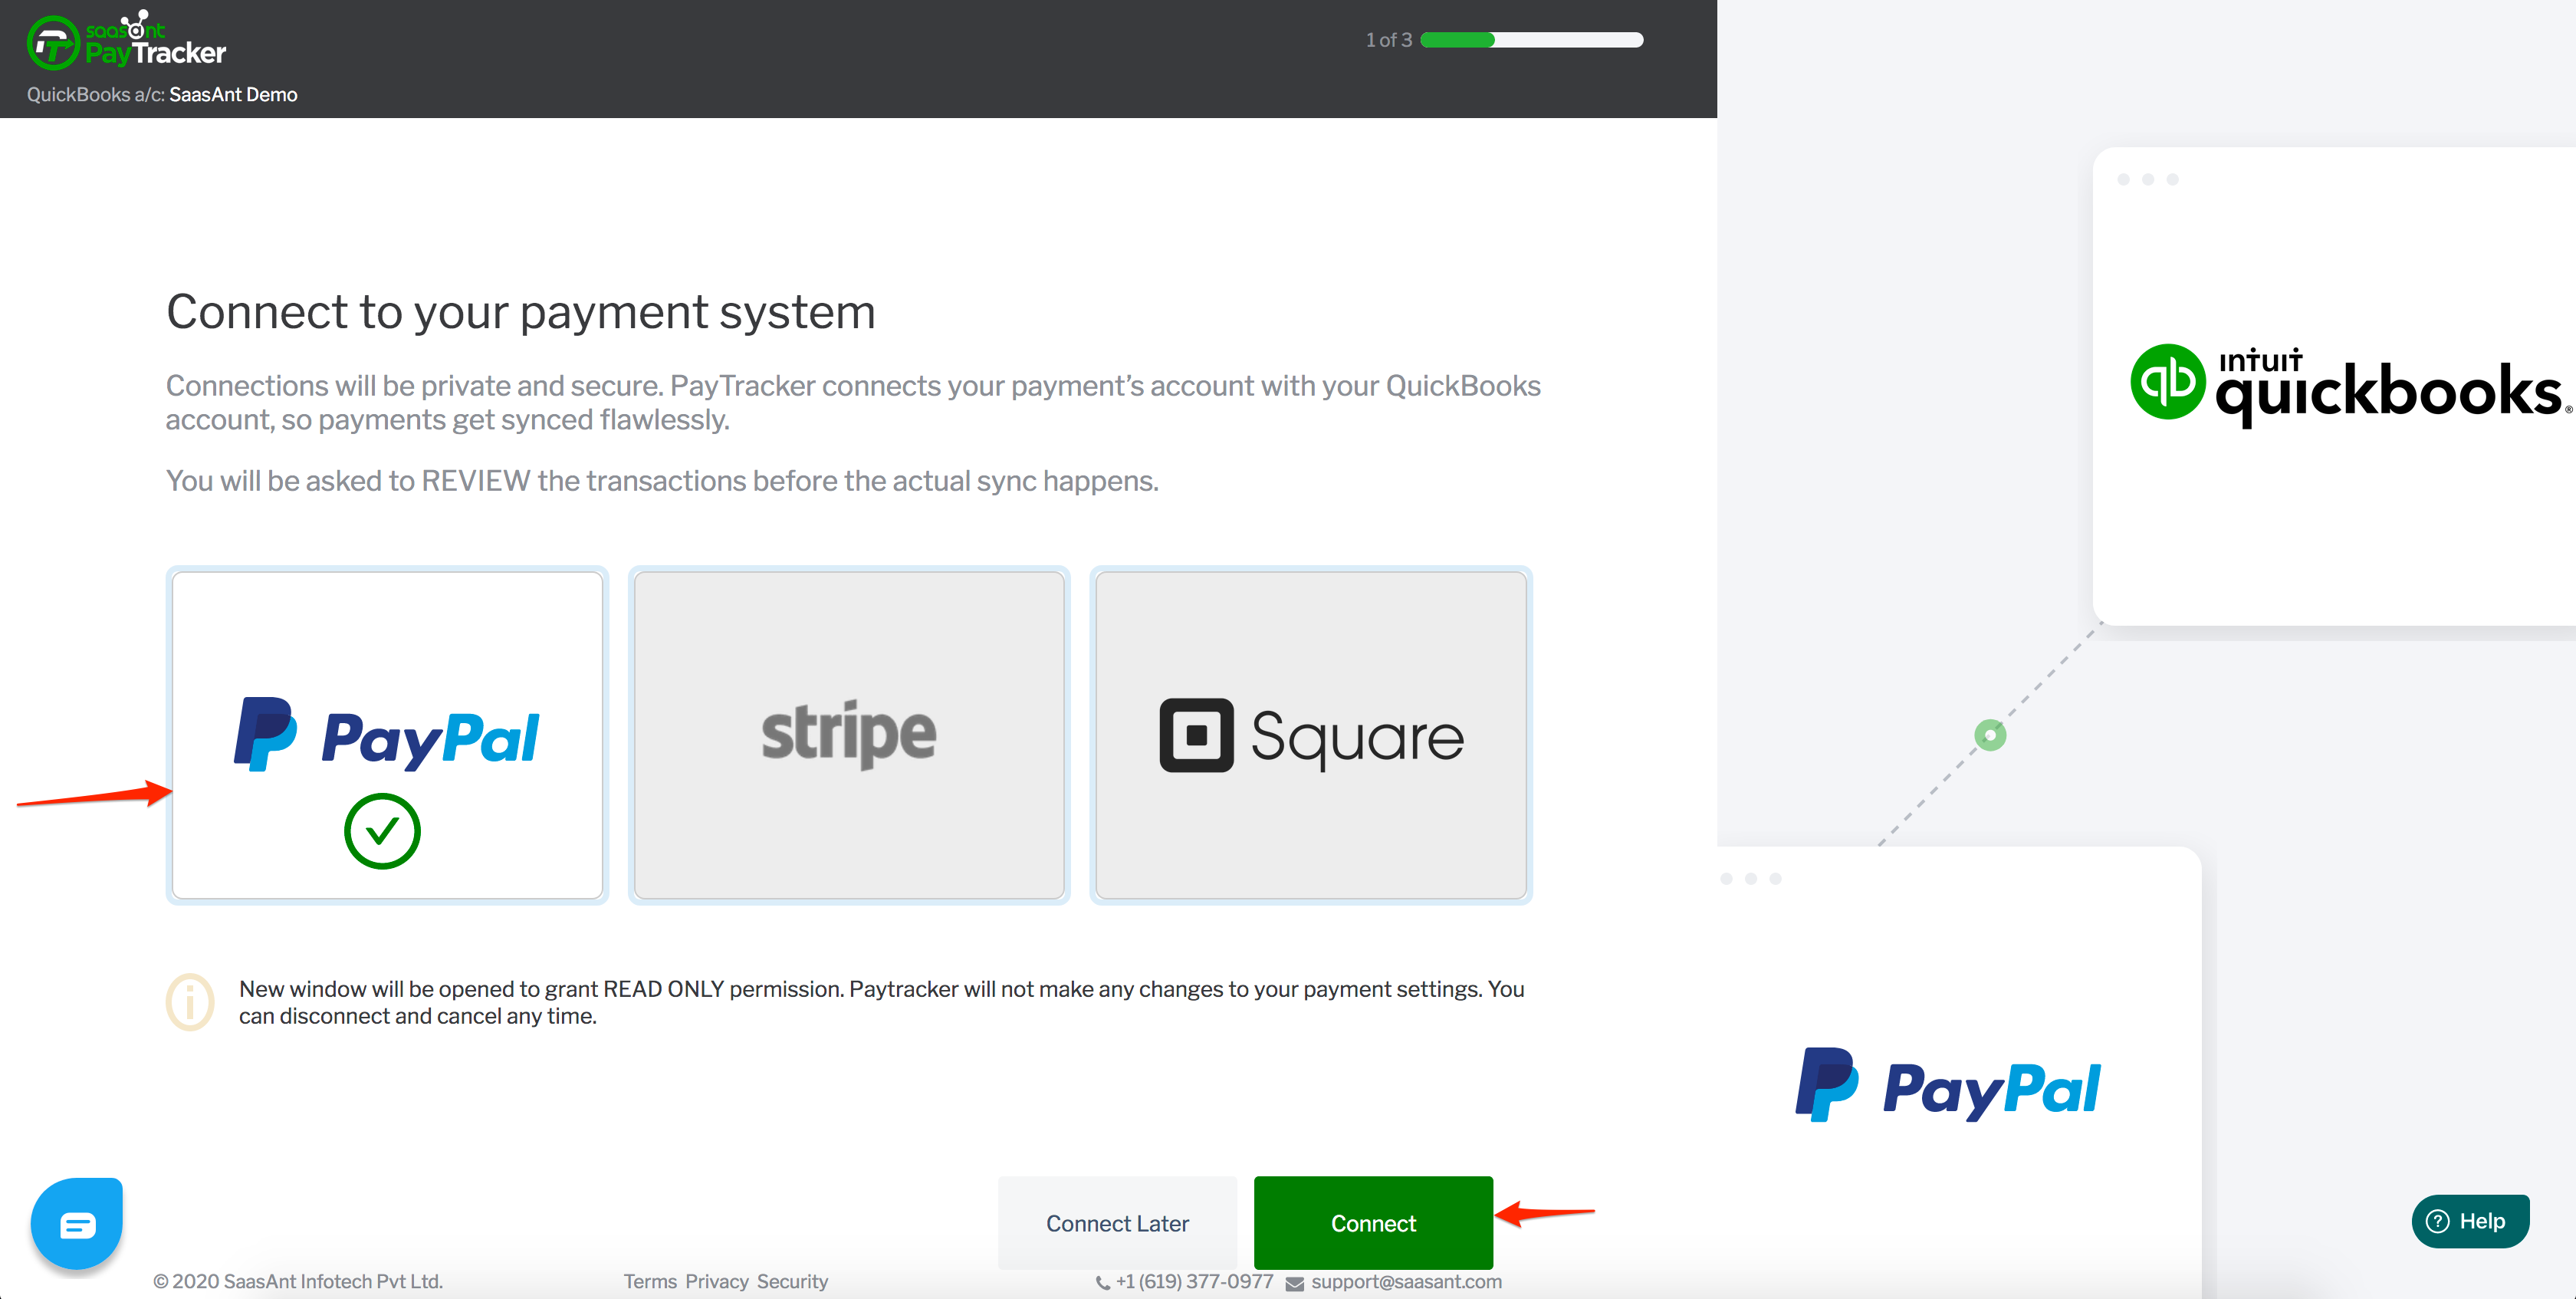 quickbooks and paypal integration